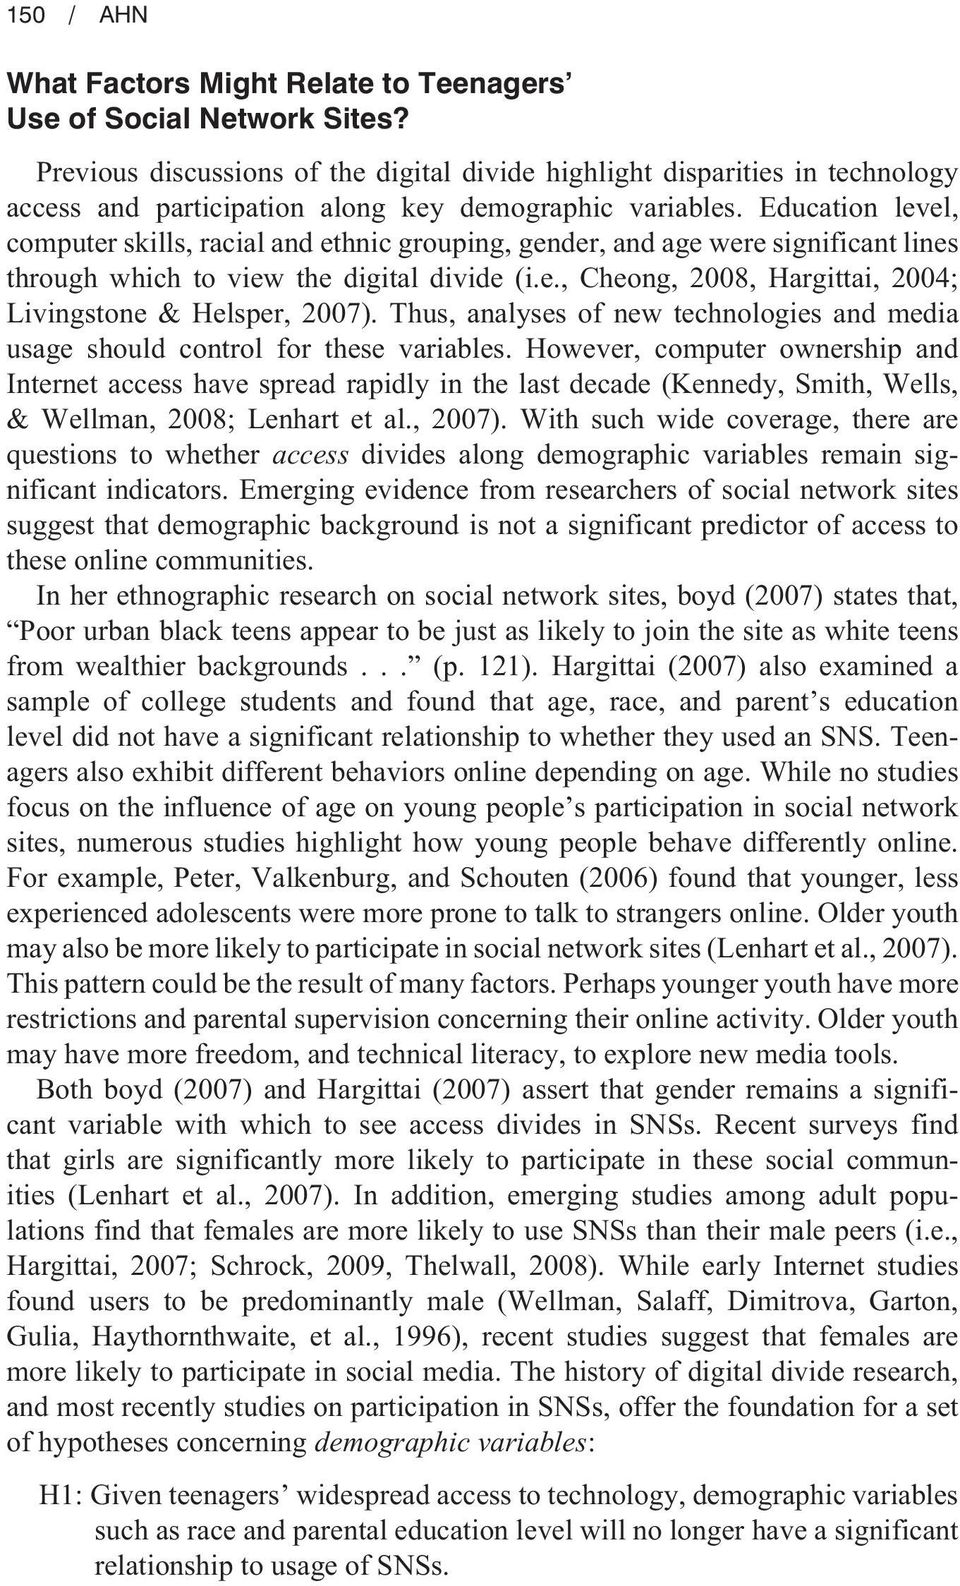 Education level, computer skills, racial and ethnic grouping, gender, and age were significant lines through which to view the digital divide (i.e., Cheong, 2008, Hargittai, 2004; Livingstone & Helsper, 2007).